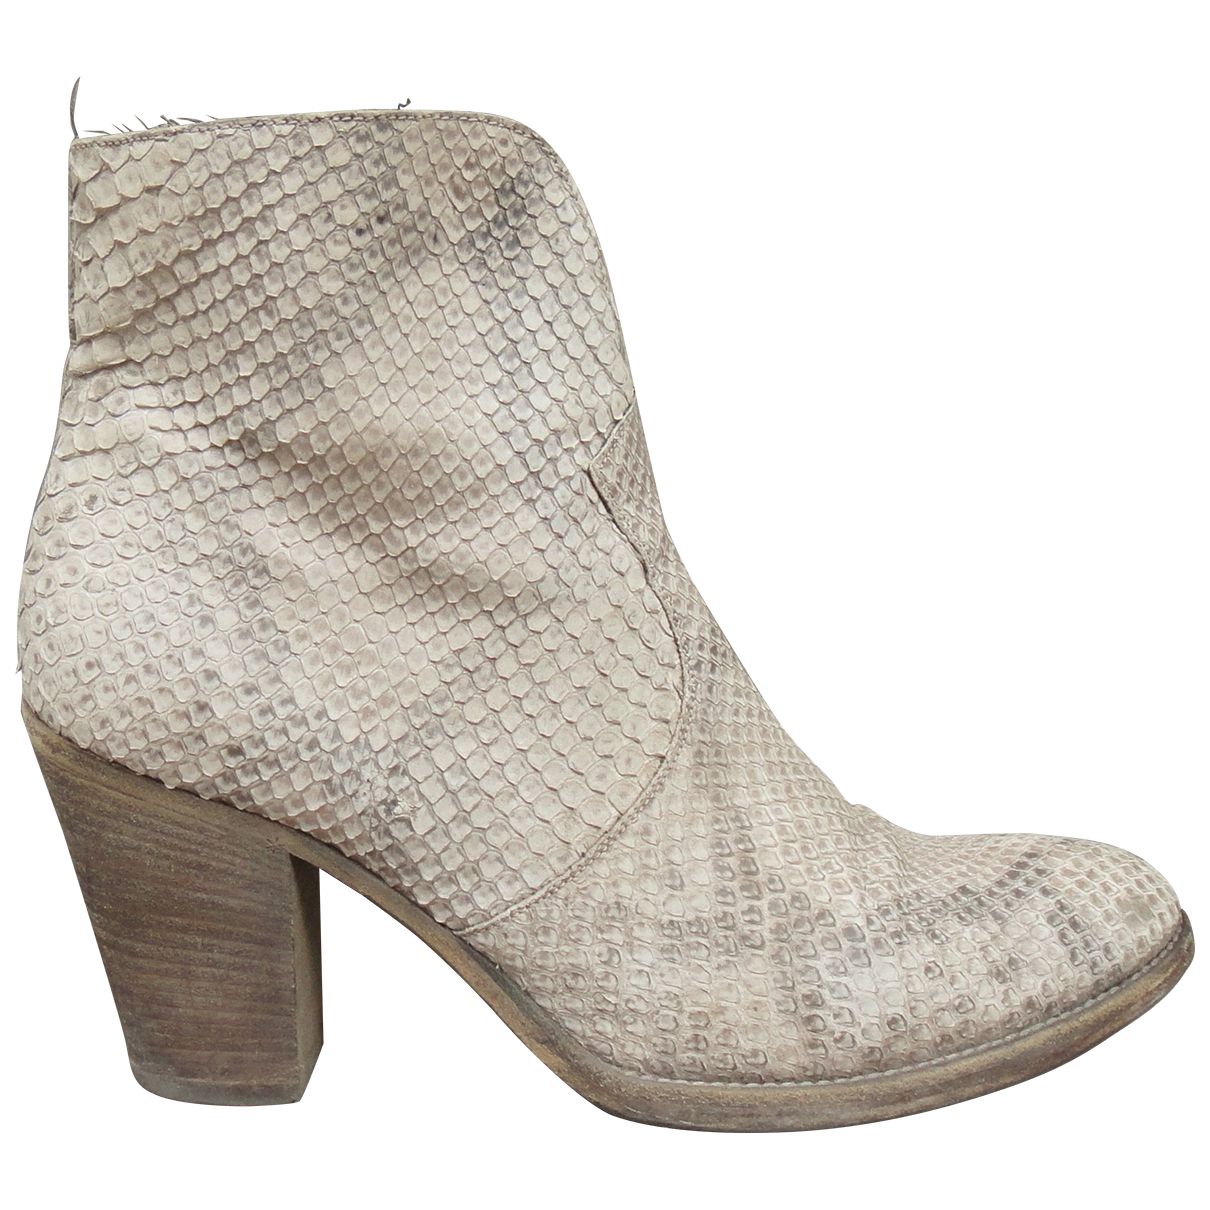 Sartore \N Beige Python Ankle boots for Women 40 IT